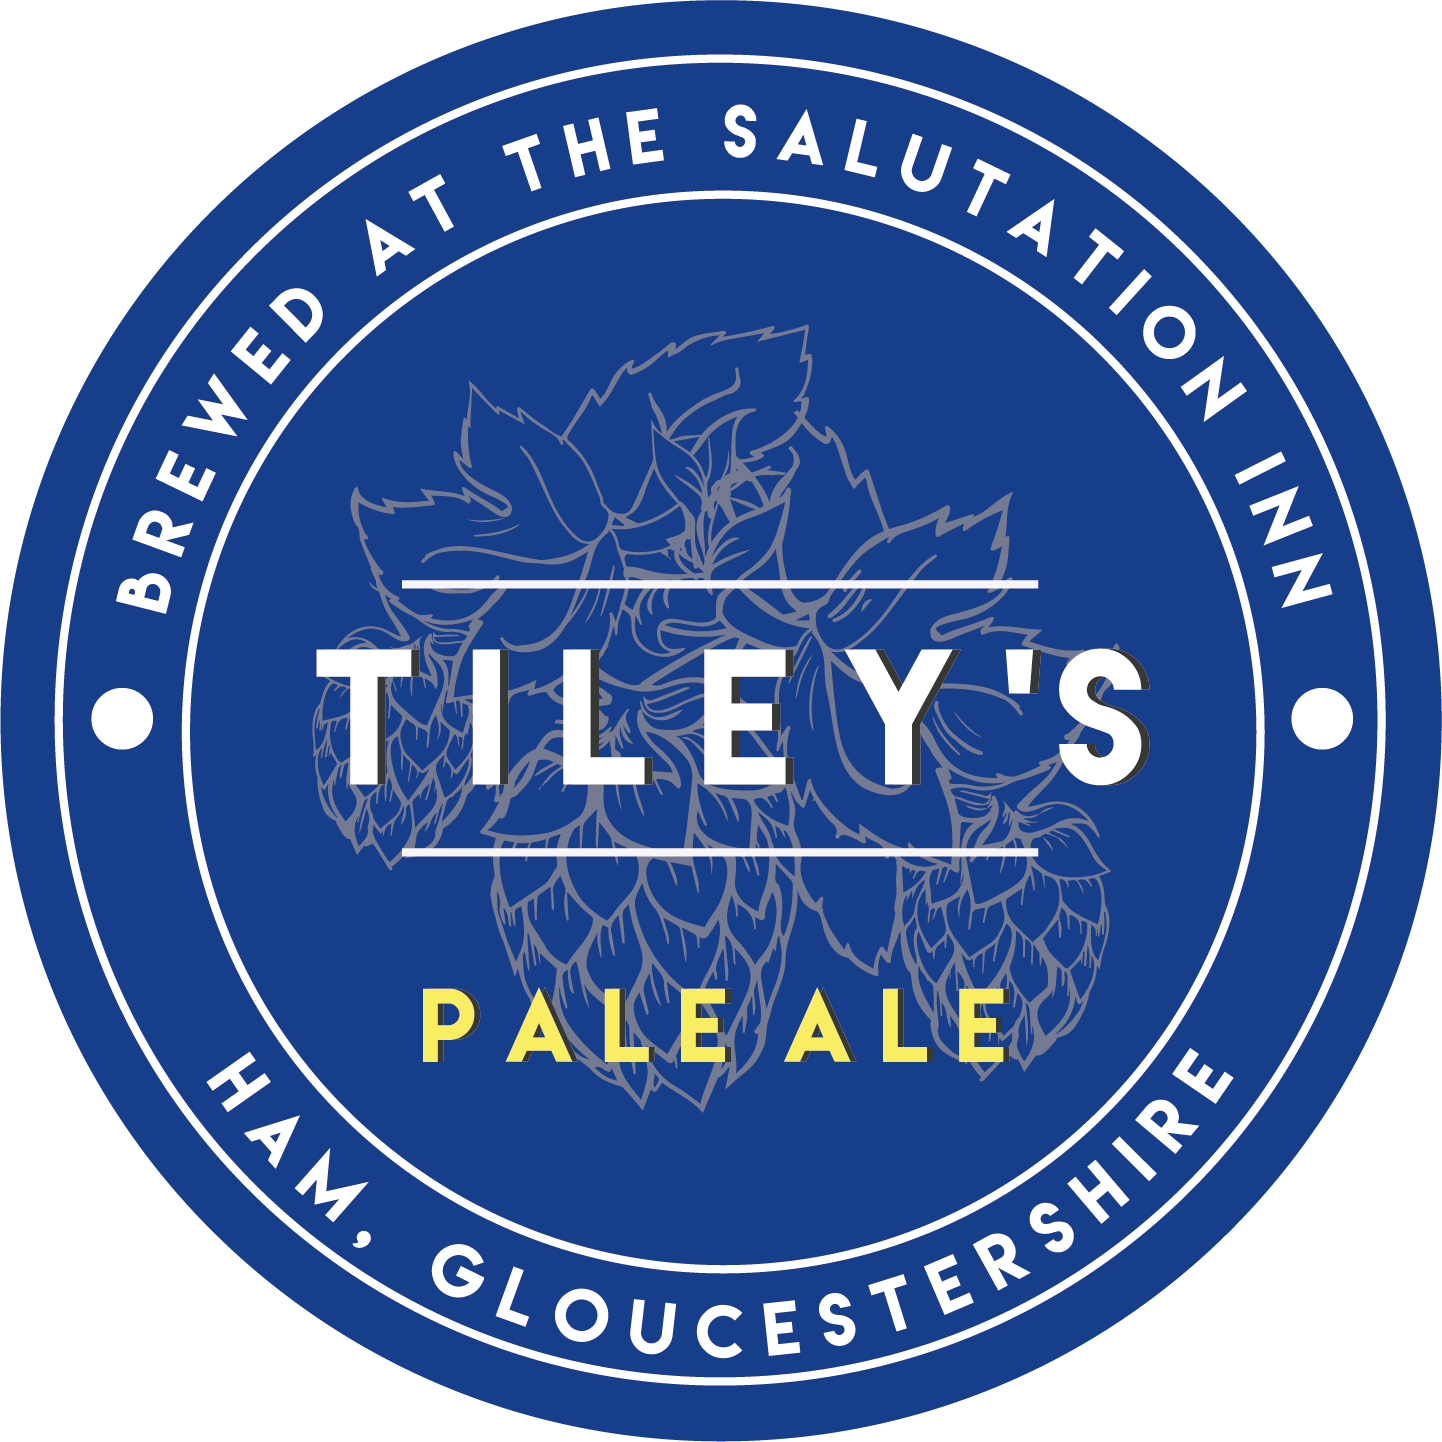 Tiley's Brewery Golden Ale 4.8% Bag-in-Box